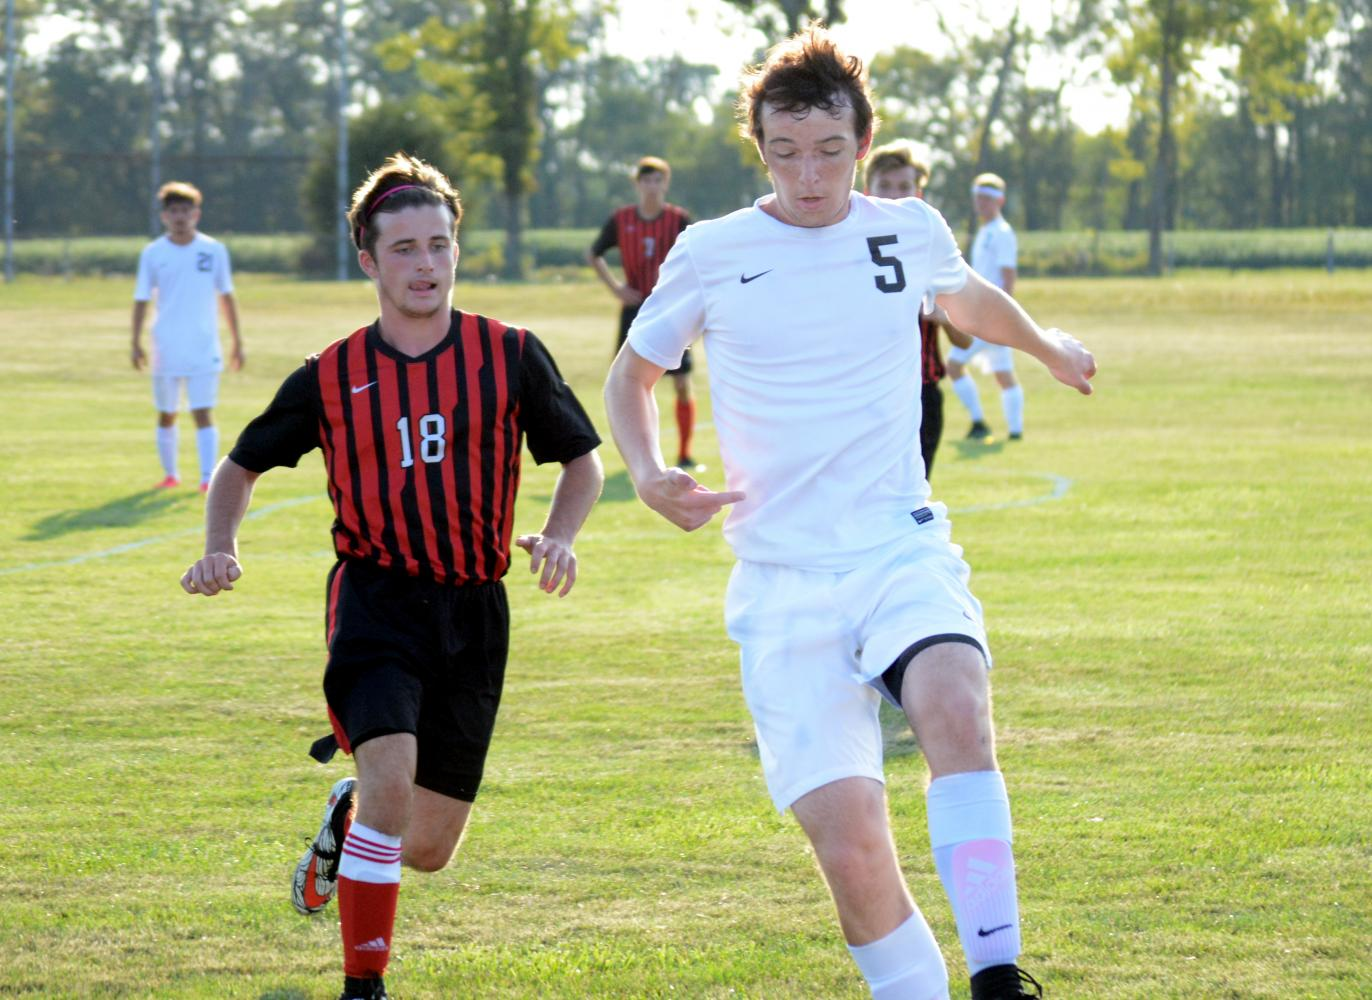 Junior Luke Pierce tackles the ball against Edgewood in a victory.